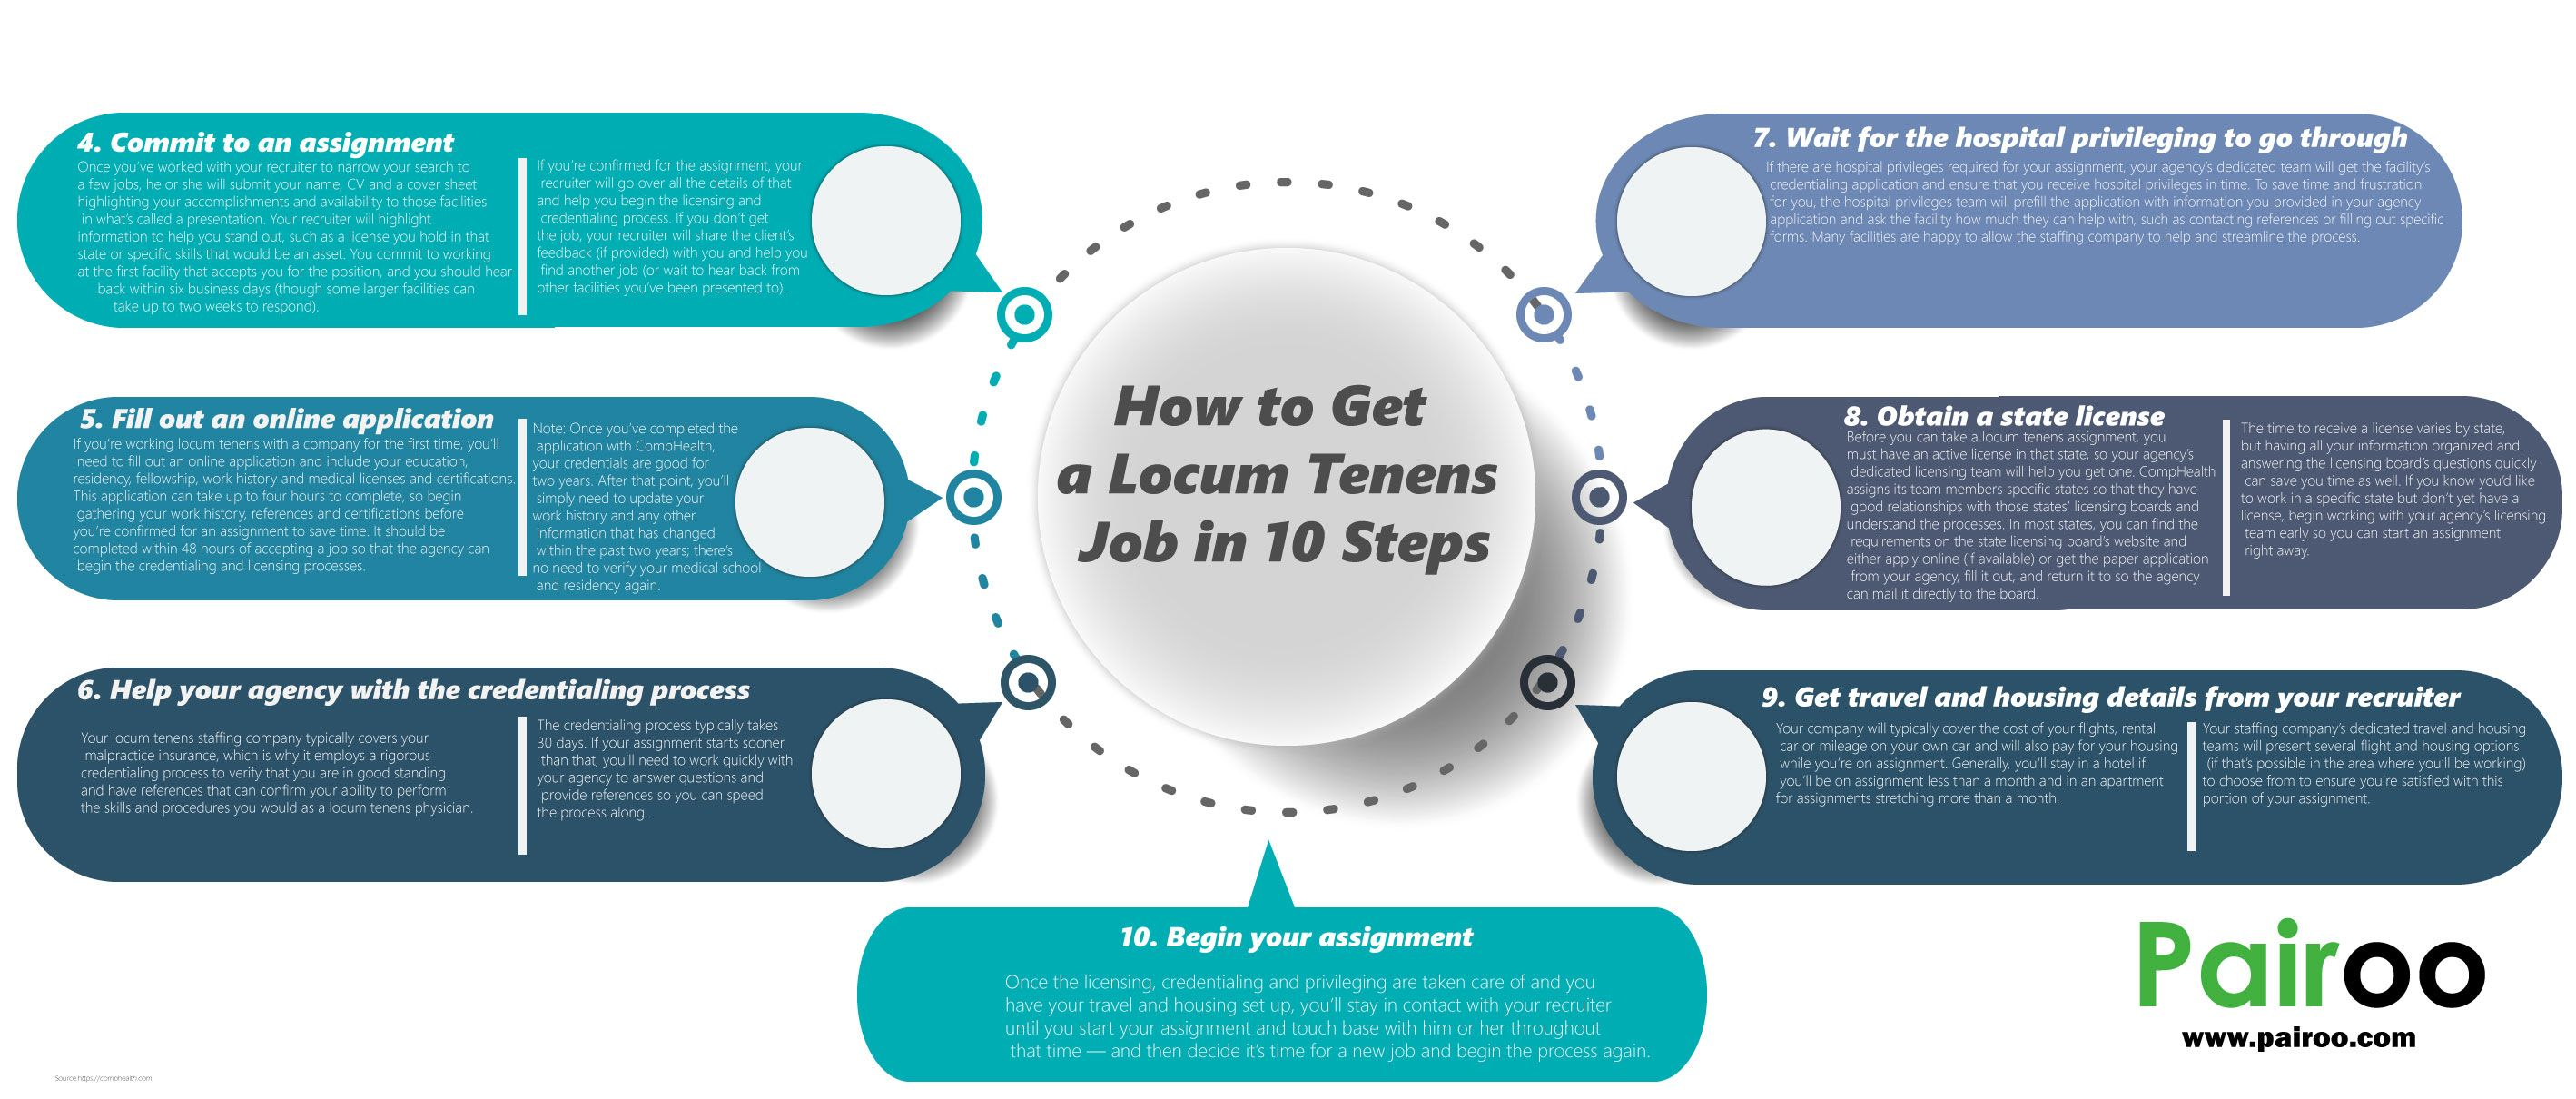 009fe1d7985dfda2044c97d8e42d5749 - How To Get A Job In The Nhs Without Experience